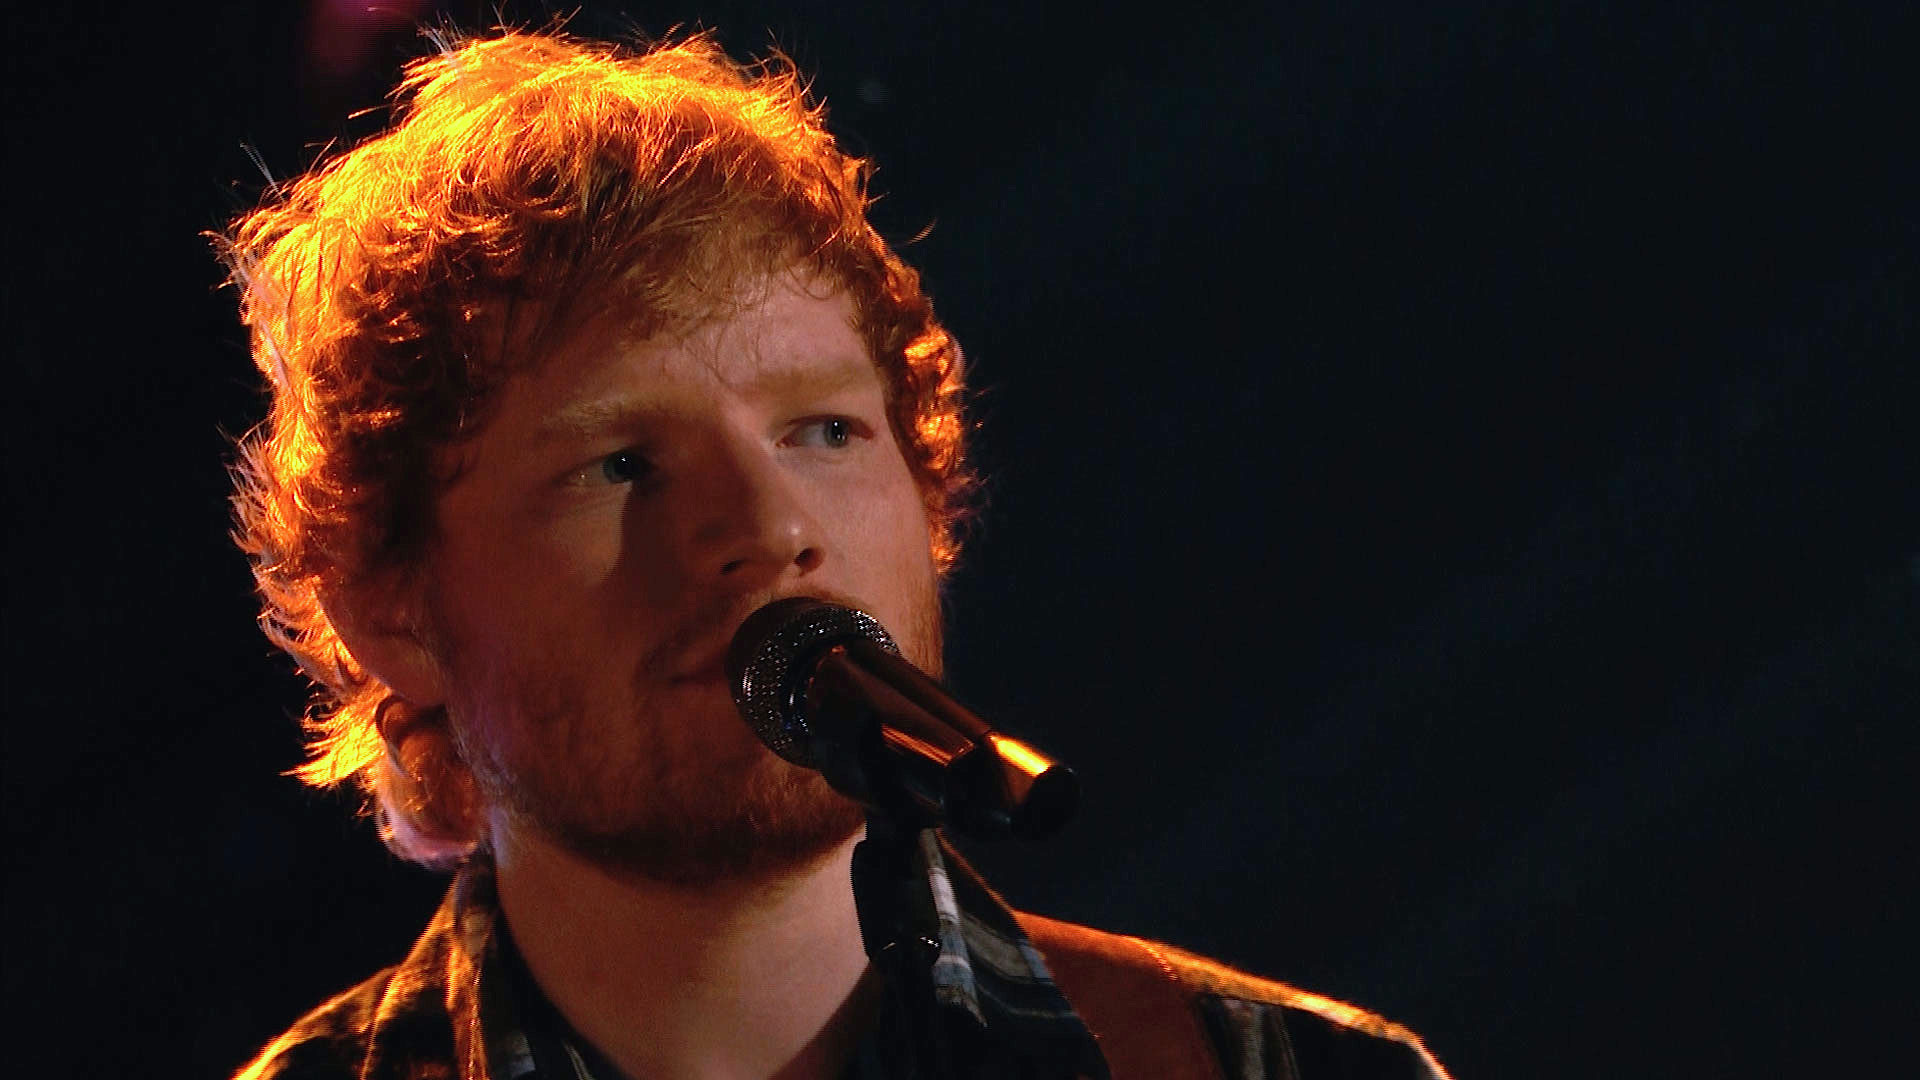 Ed Sheeran  Photograph Official Music Video  YouTube